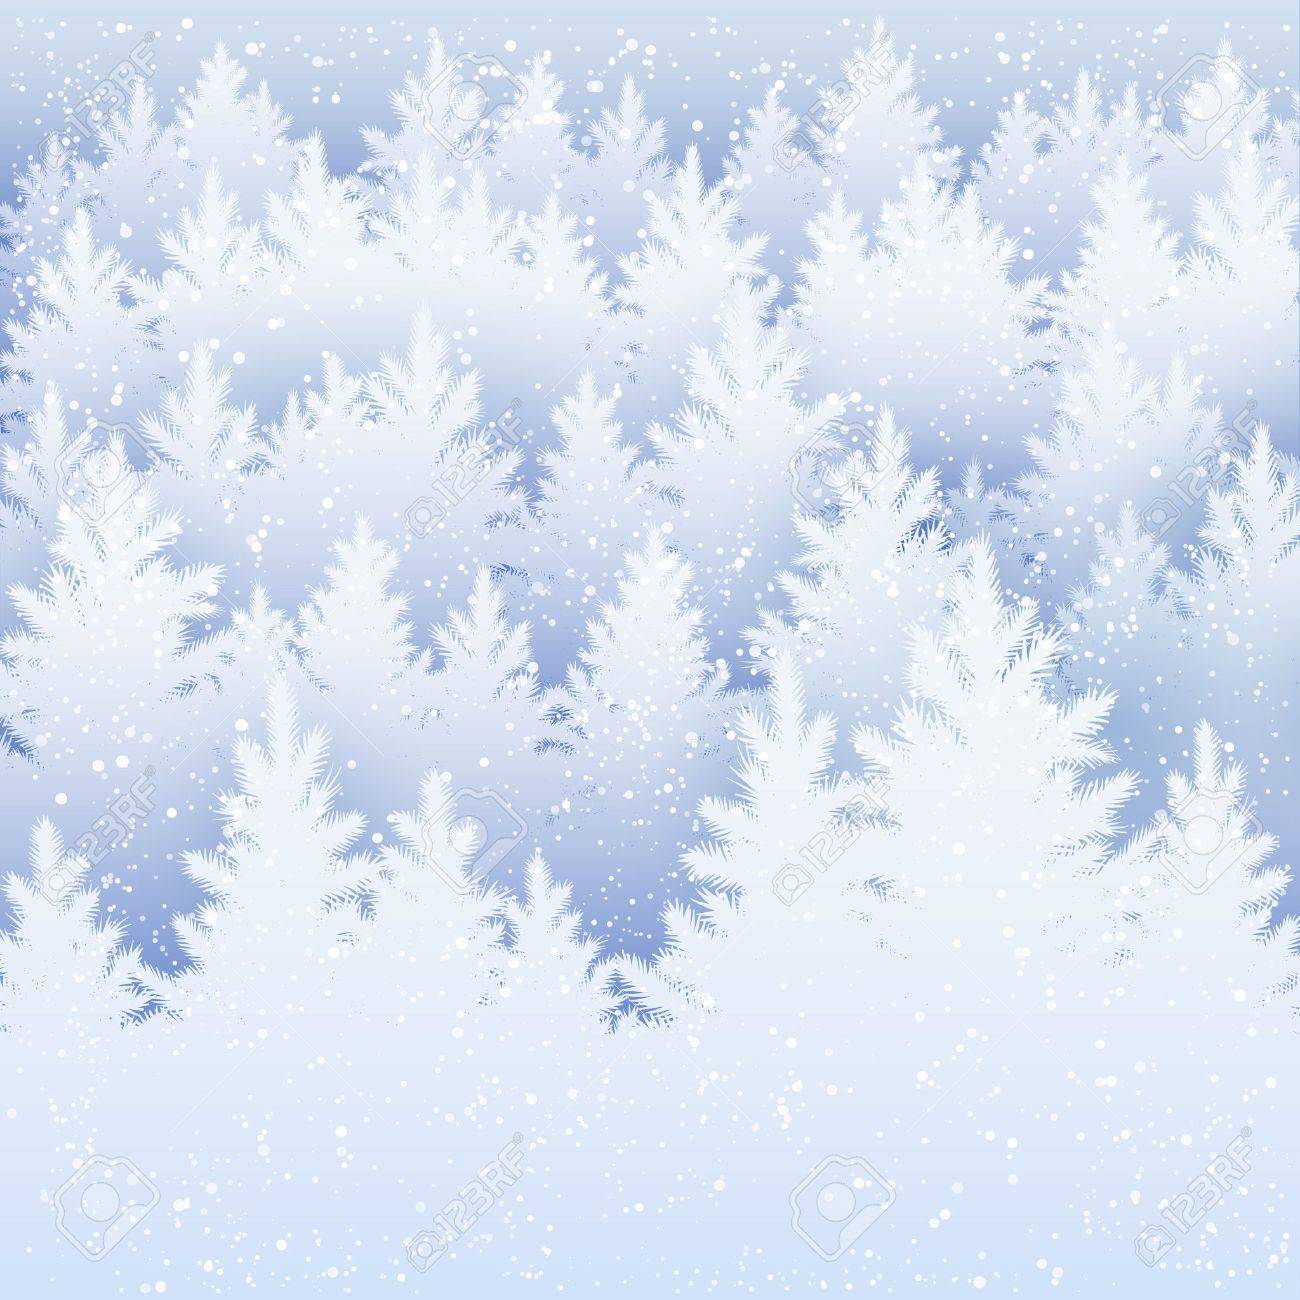 Vector Christmas background with winter spruce forest silhouette and falling snow. - 49165023